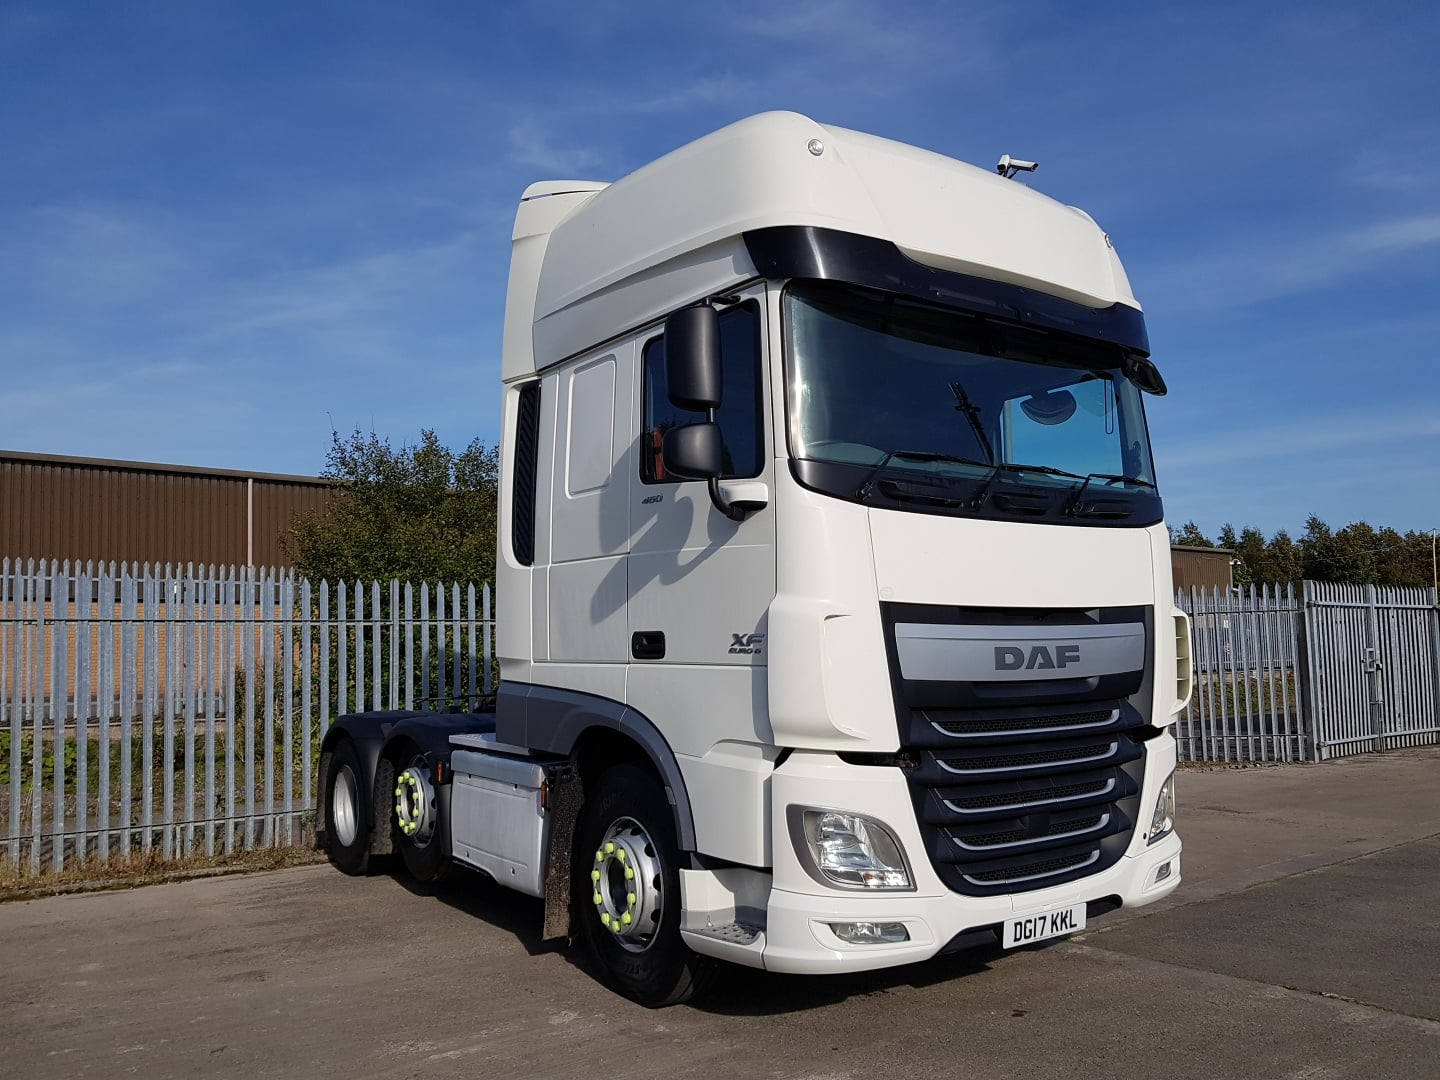 2017 Daf. Euro 6, 460bhp, Superspace Twin Sleeper Cab, AS Tronic Automatic Gearbox, 3.95m Wheelbase, Steering Wheel Controls, Mid-Lift Axle, Warranty & Choice Available.